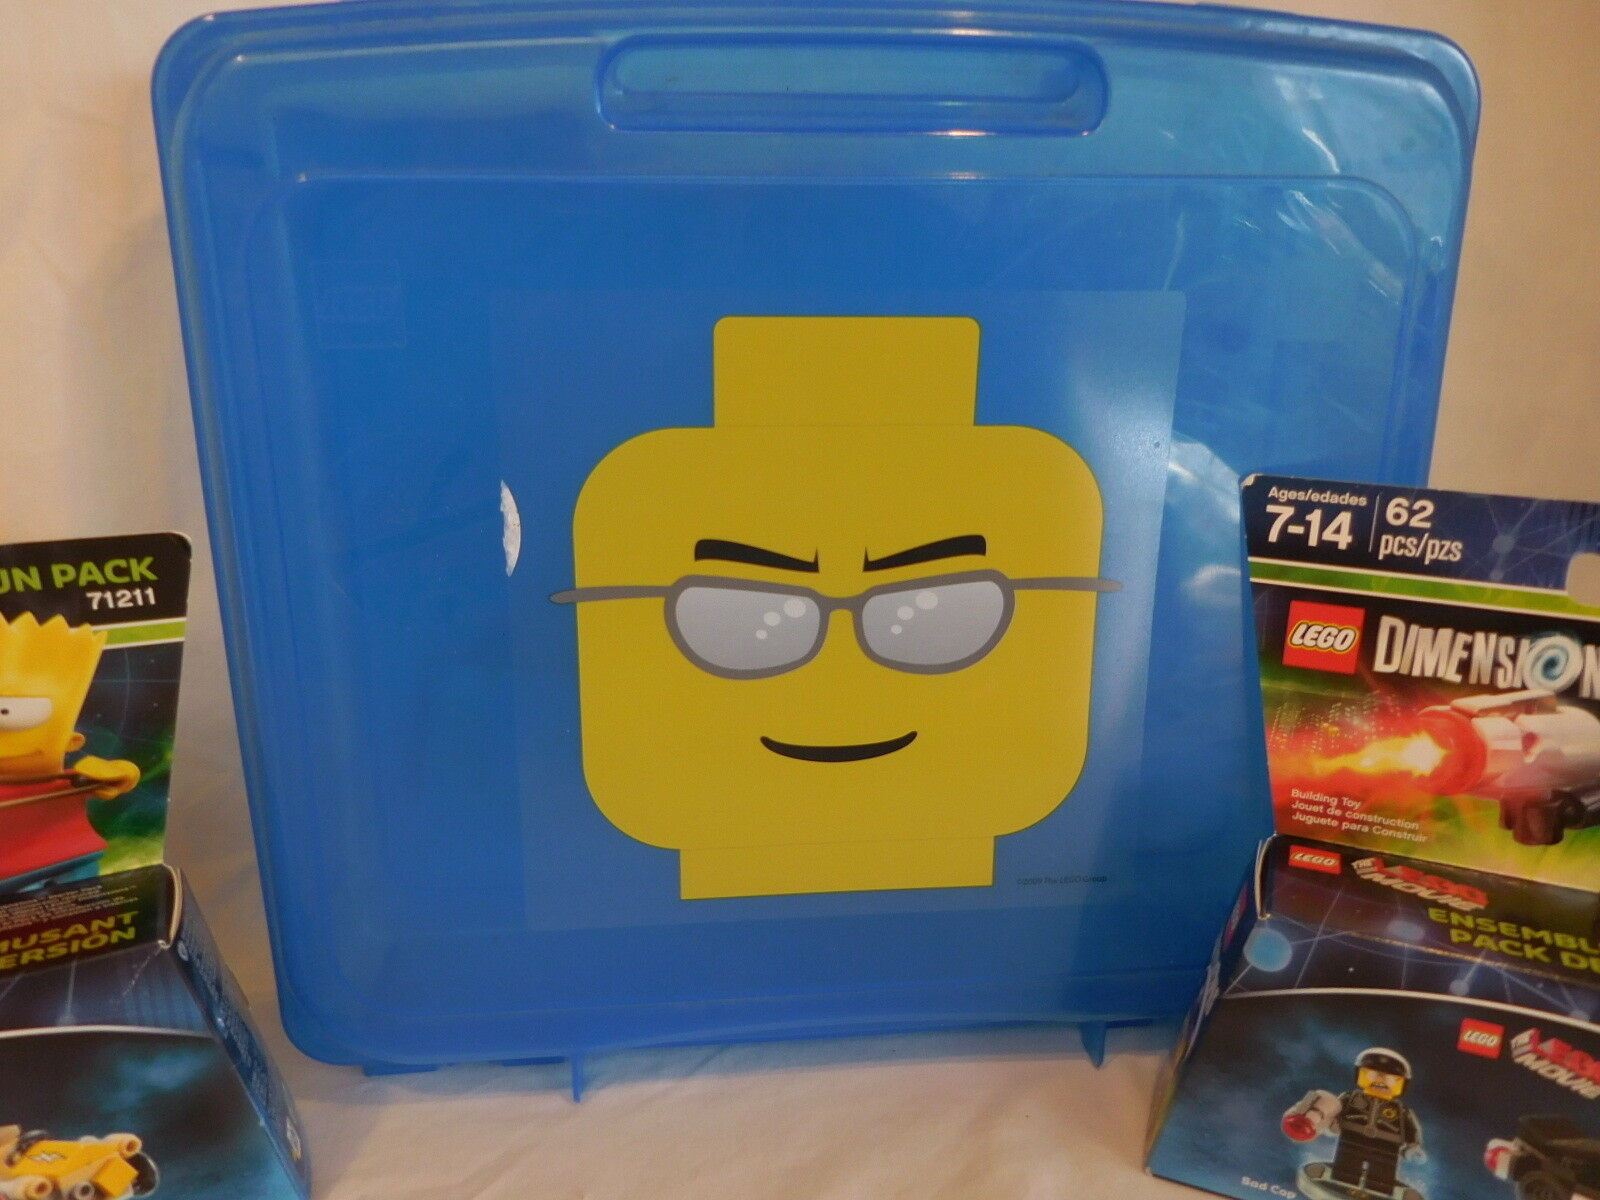 Lego Minifigure Head Storage Carrying Cases Container Container Container Yellow + bluee + New Lego's a6656f